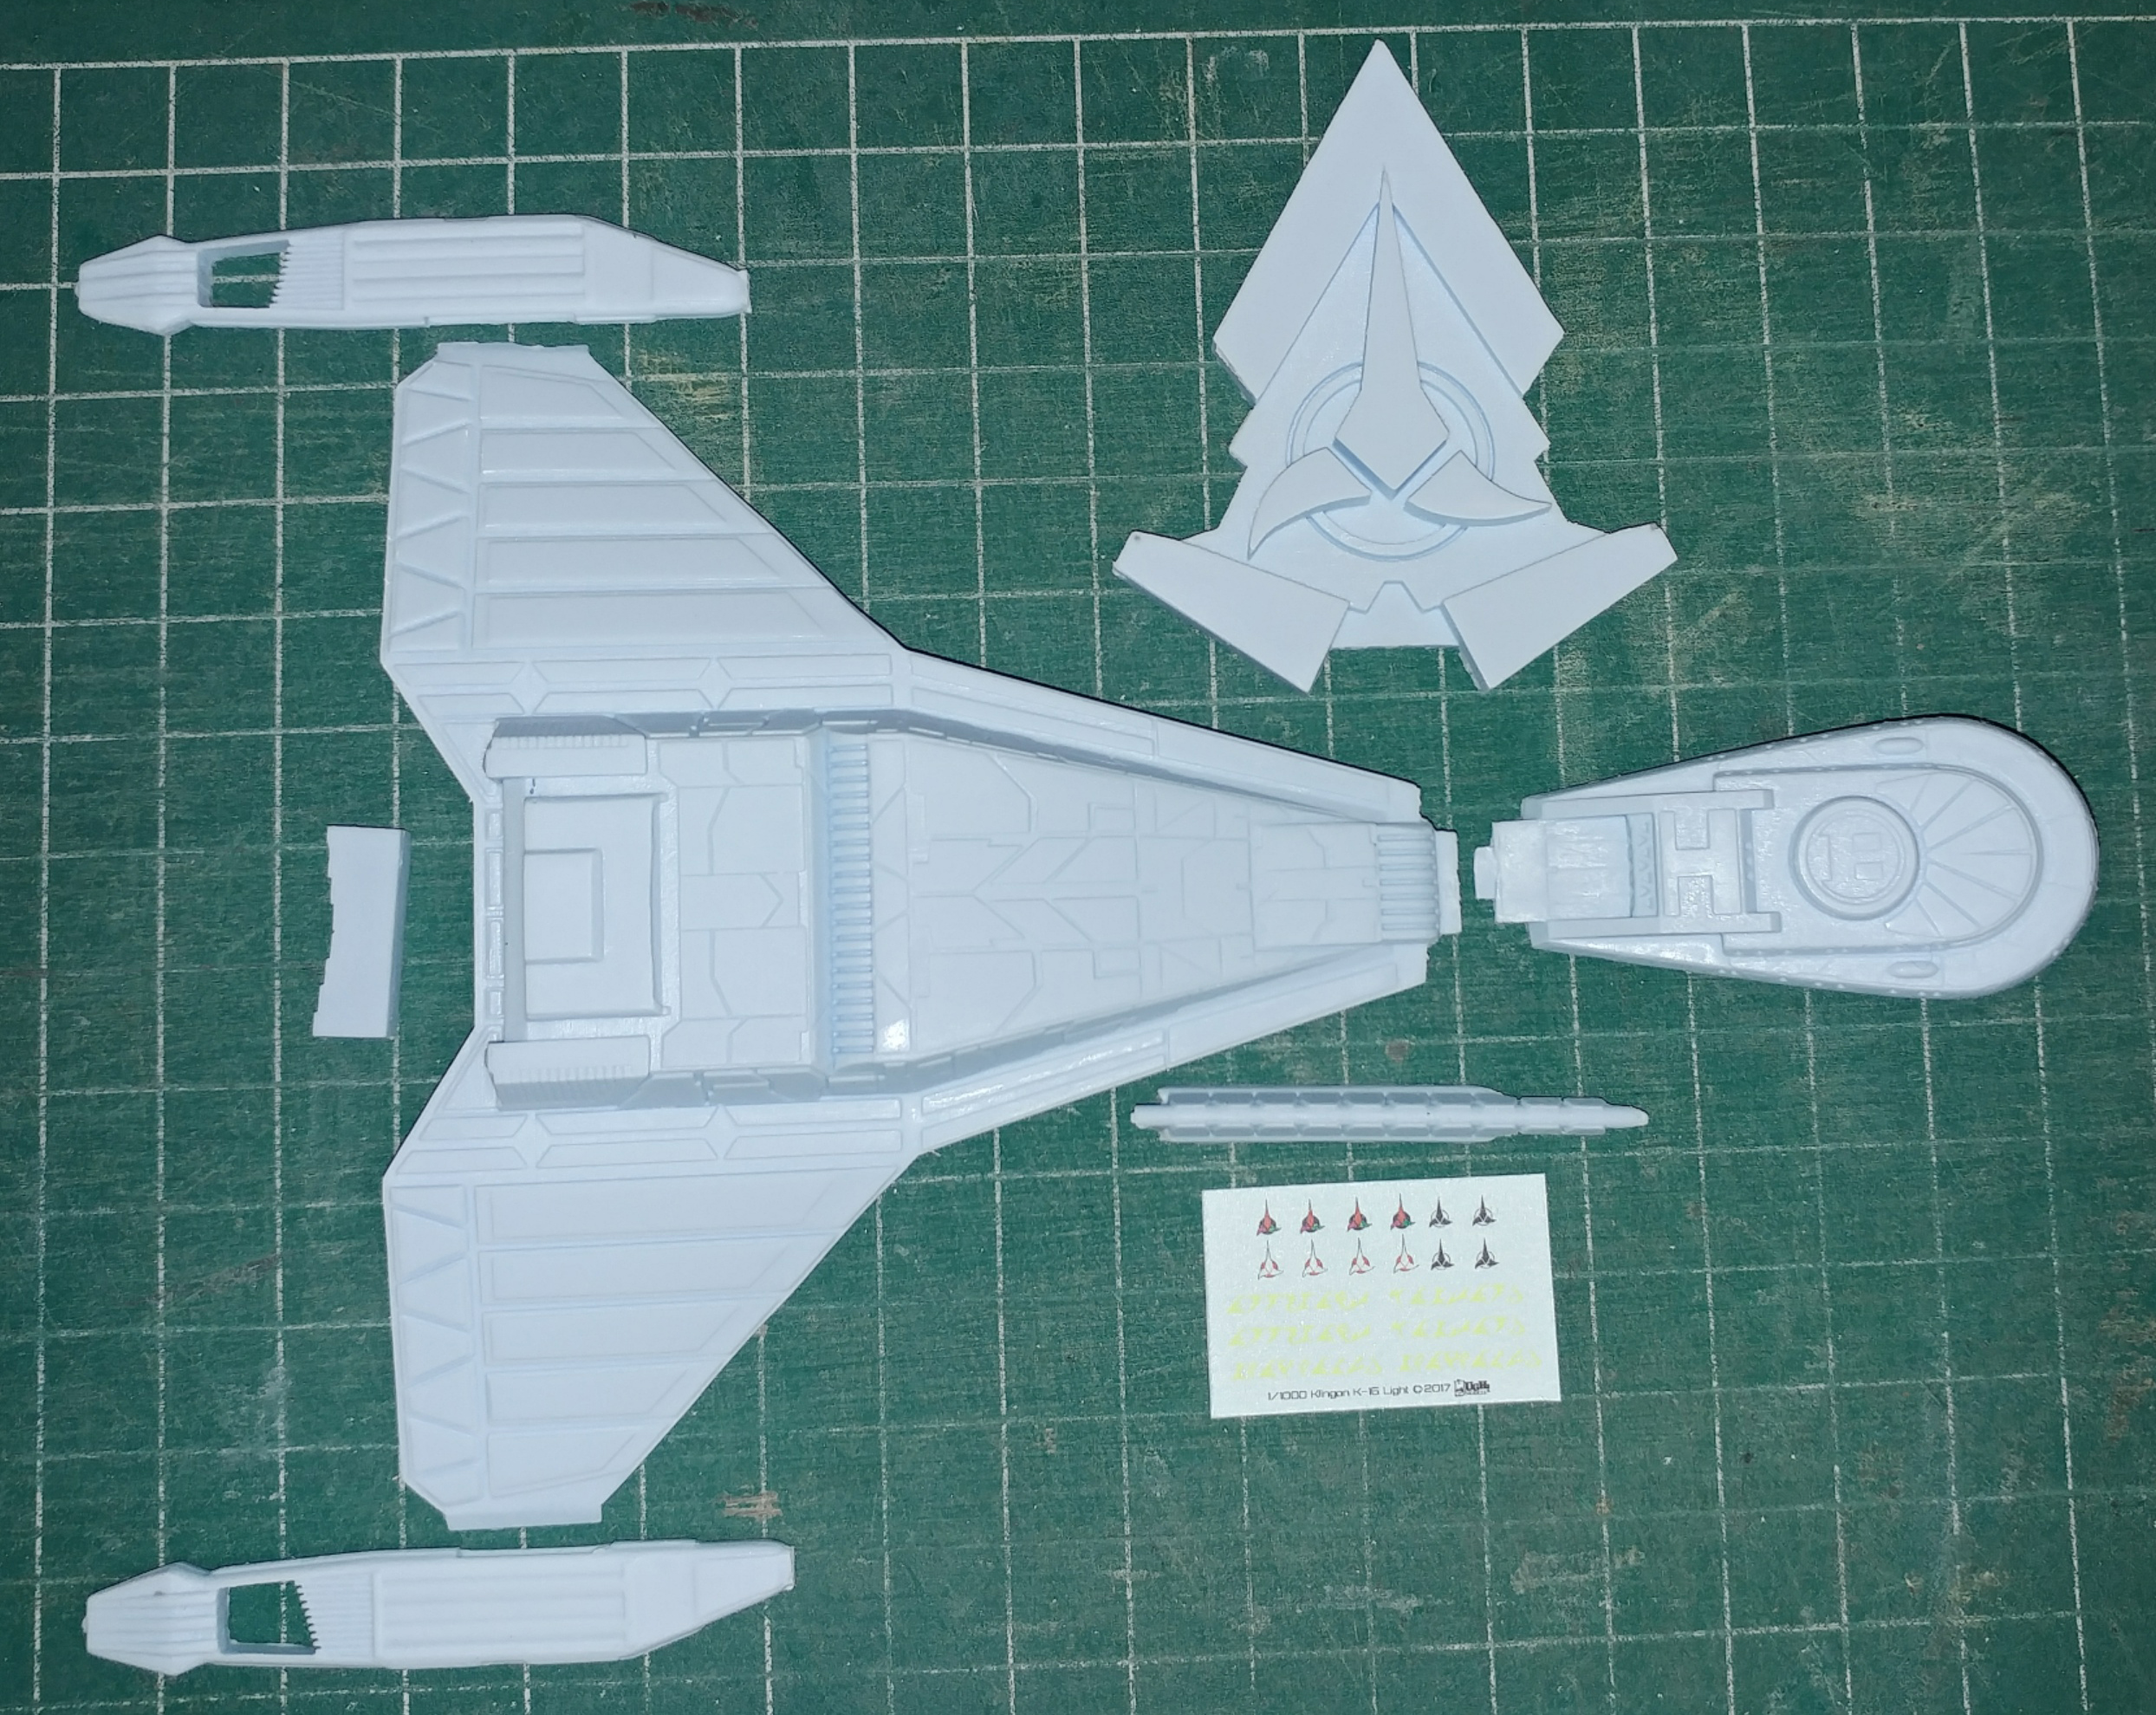 1/1000 Klingon K-15 Light Cruiser